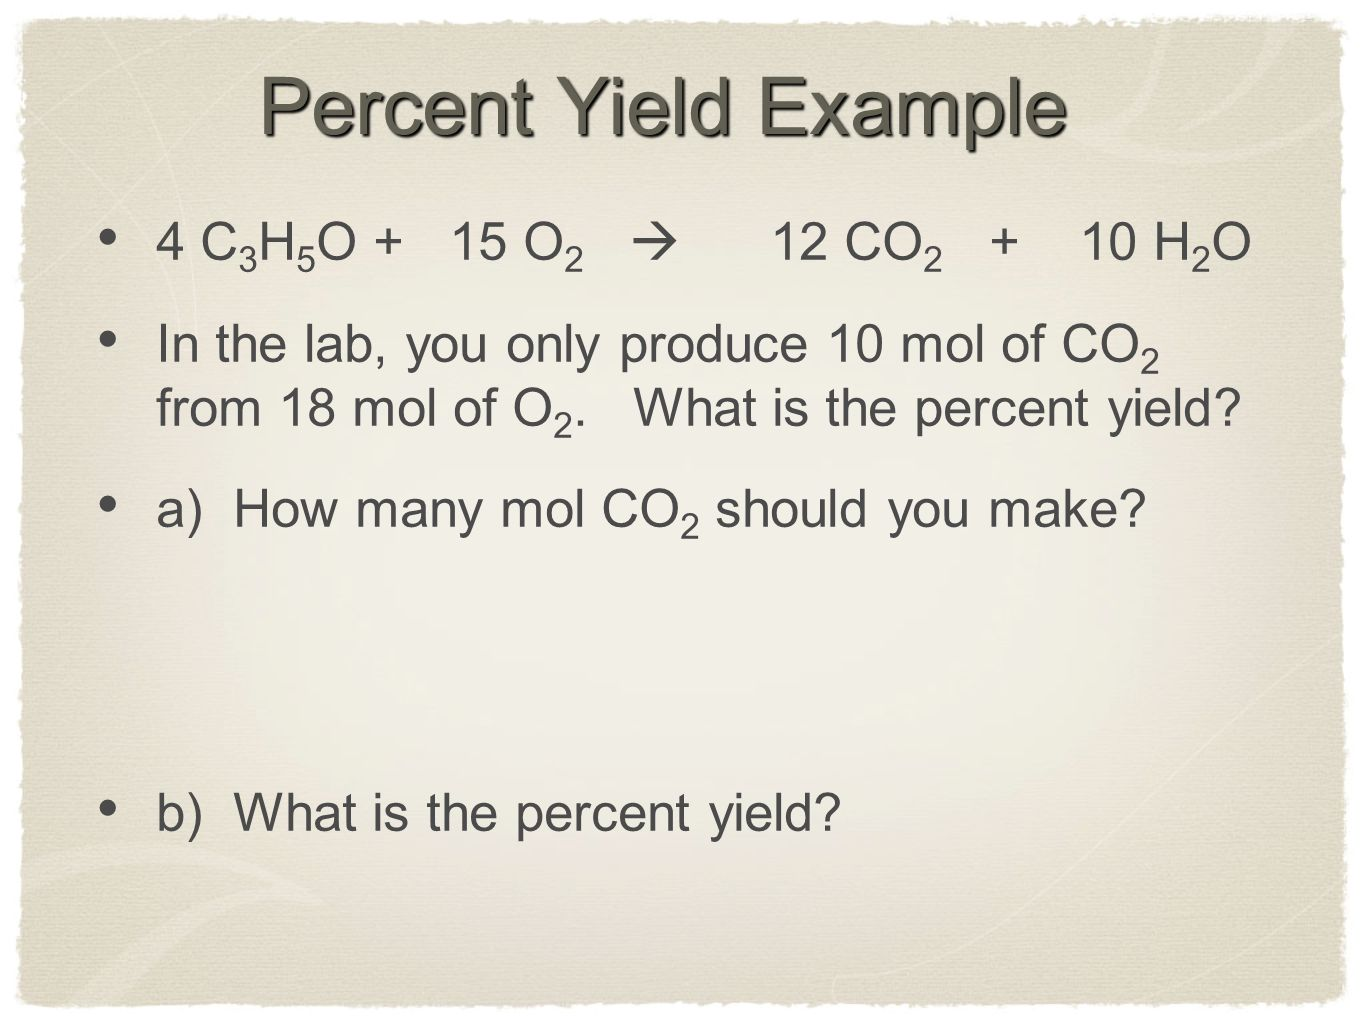 Percent Yield Example 4 C3H5O + 15 O2  12 CO2 + 10 H2O